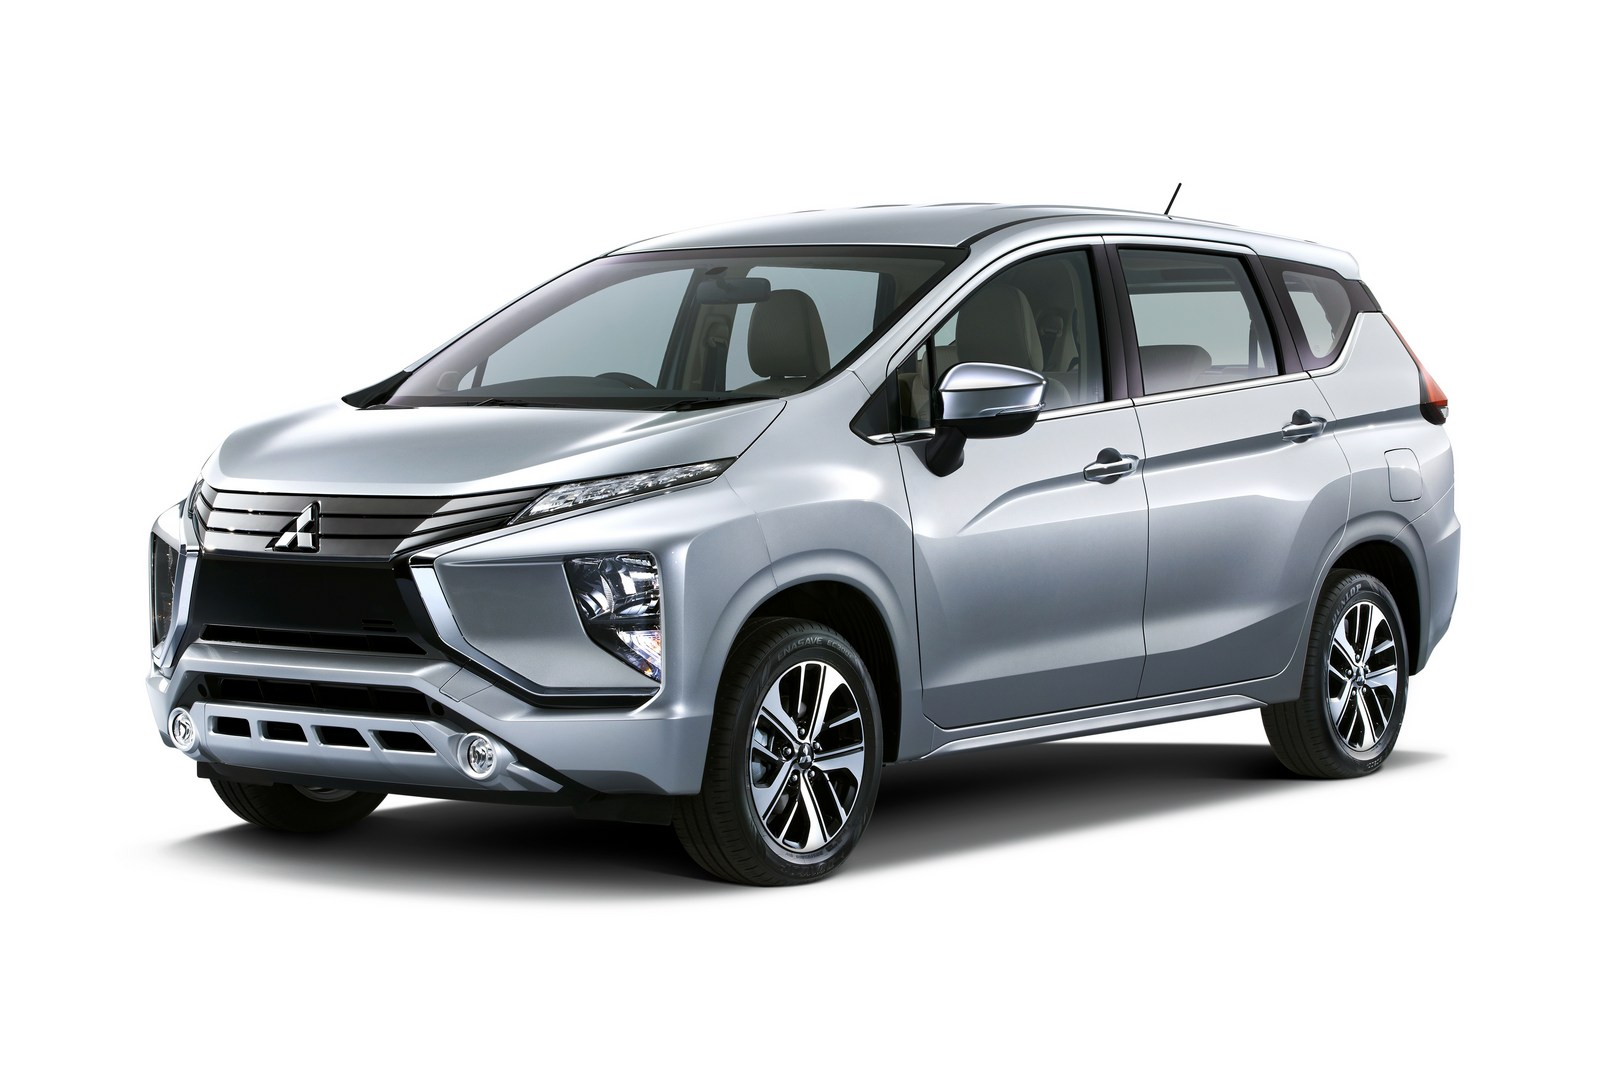 2018 Mitsubishi Xpander Looks Like It Came From Outer Space - autoevolution